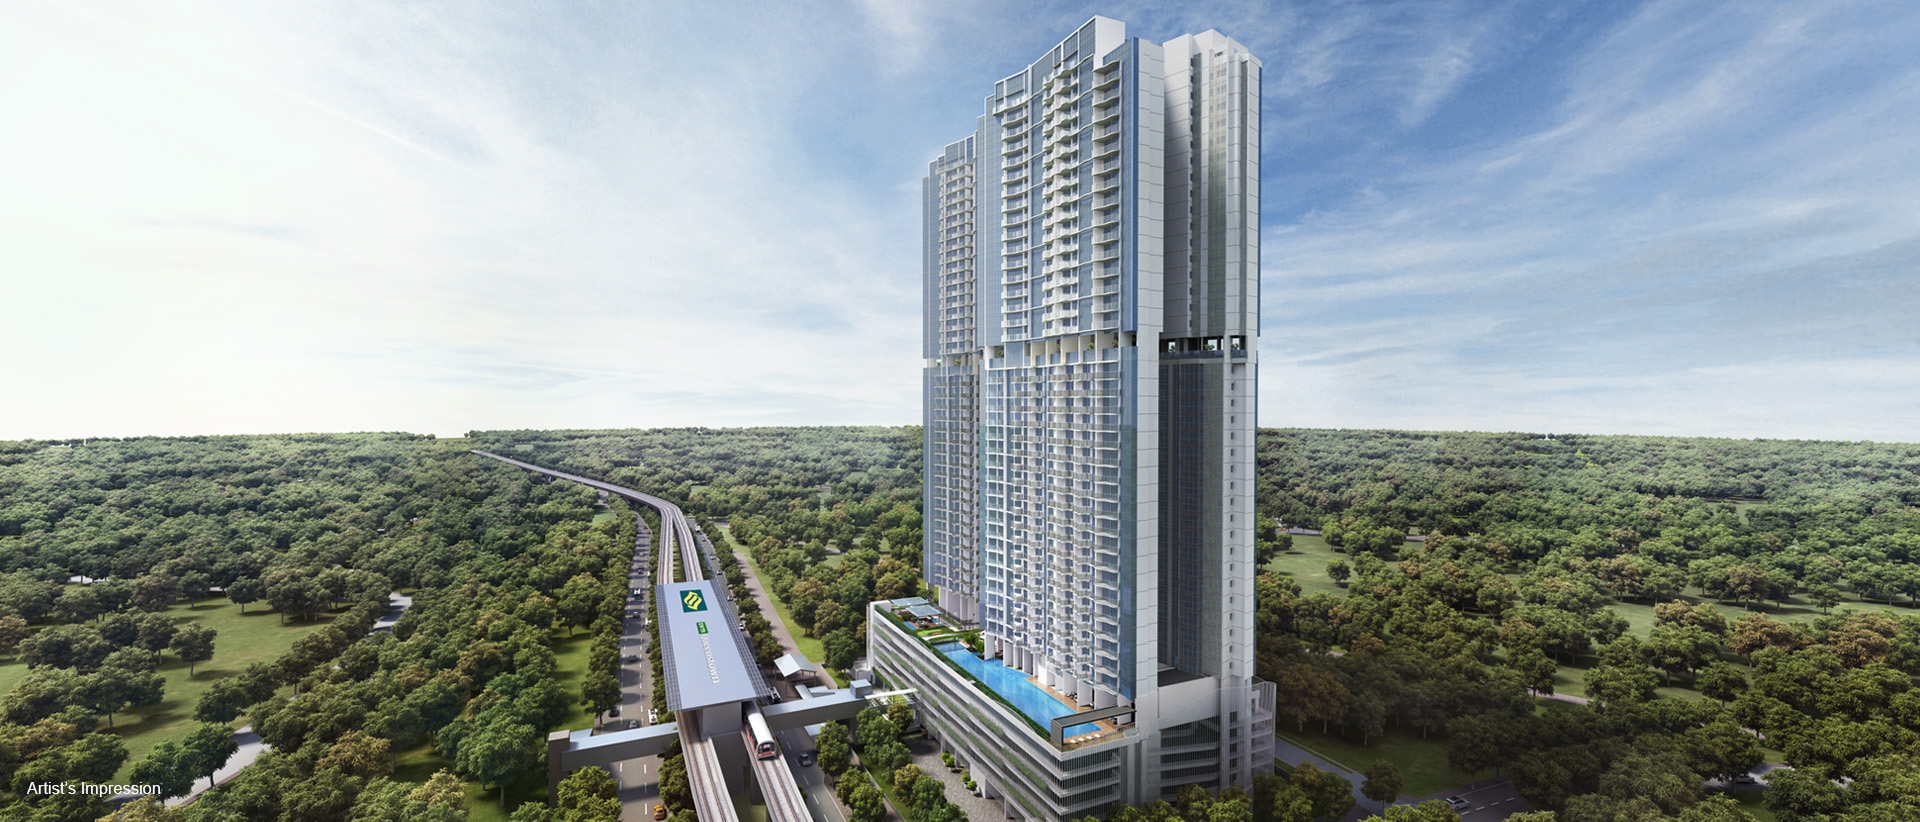 Condominiums that will TOP in 2020